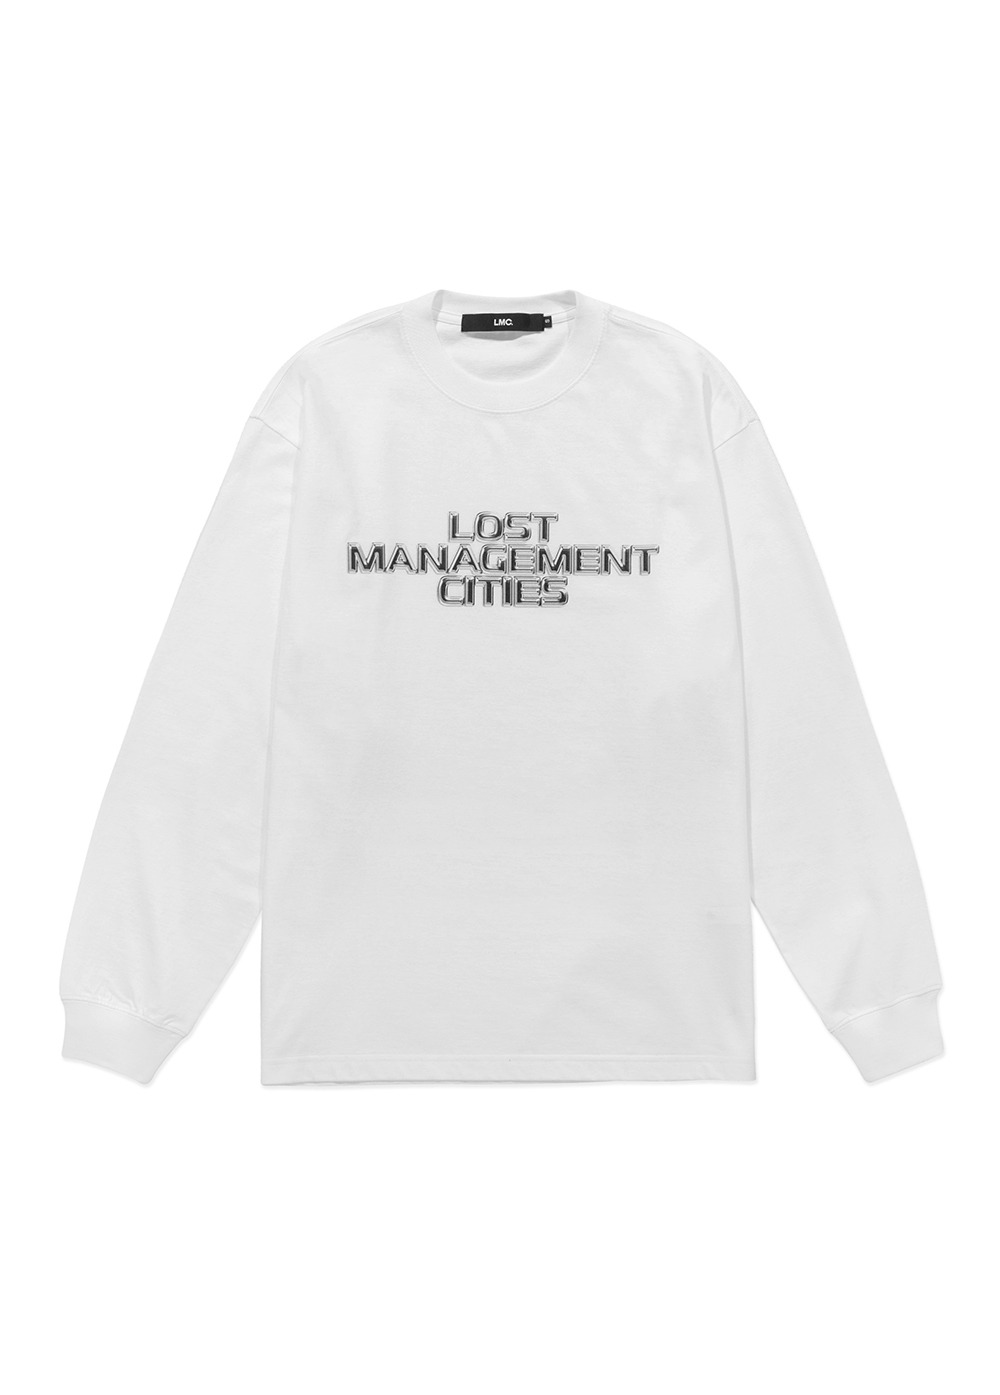 LMC THREE TIER CHROME LONG SLV TEE white